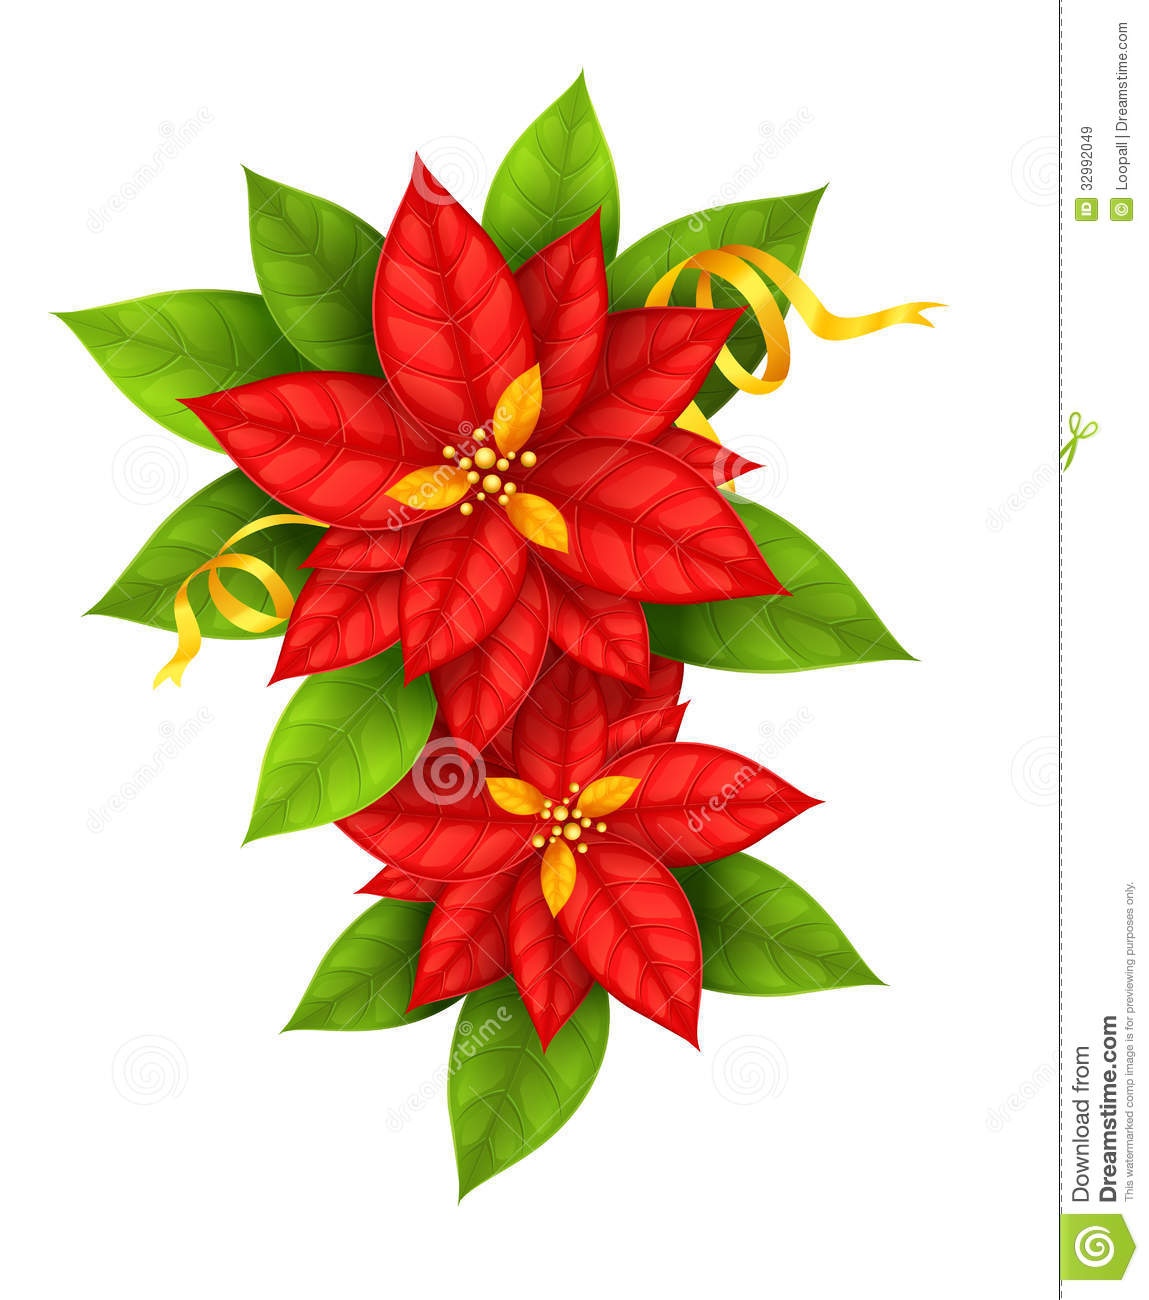 Christmas flowers pictures free clip art royalty free library Christmas Star Flowers Poinsettia With Gold Ribbon Royalty Free ... clip art royalty free library